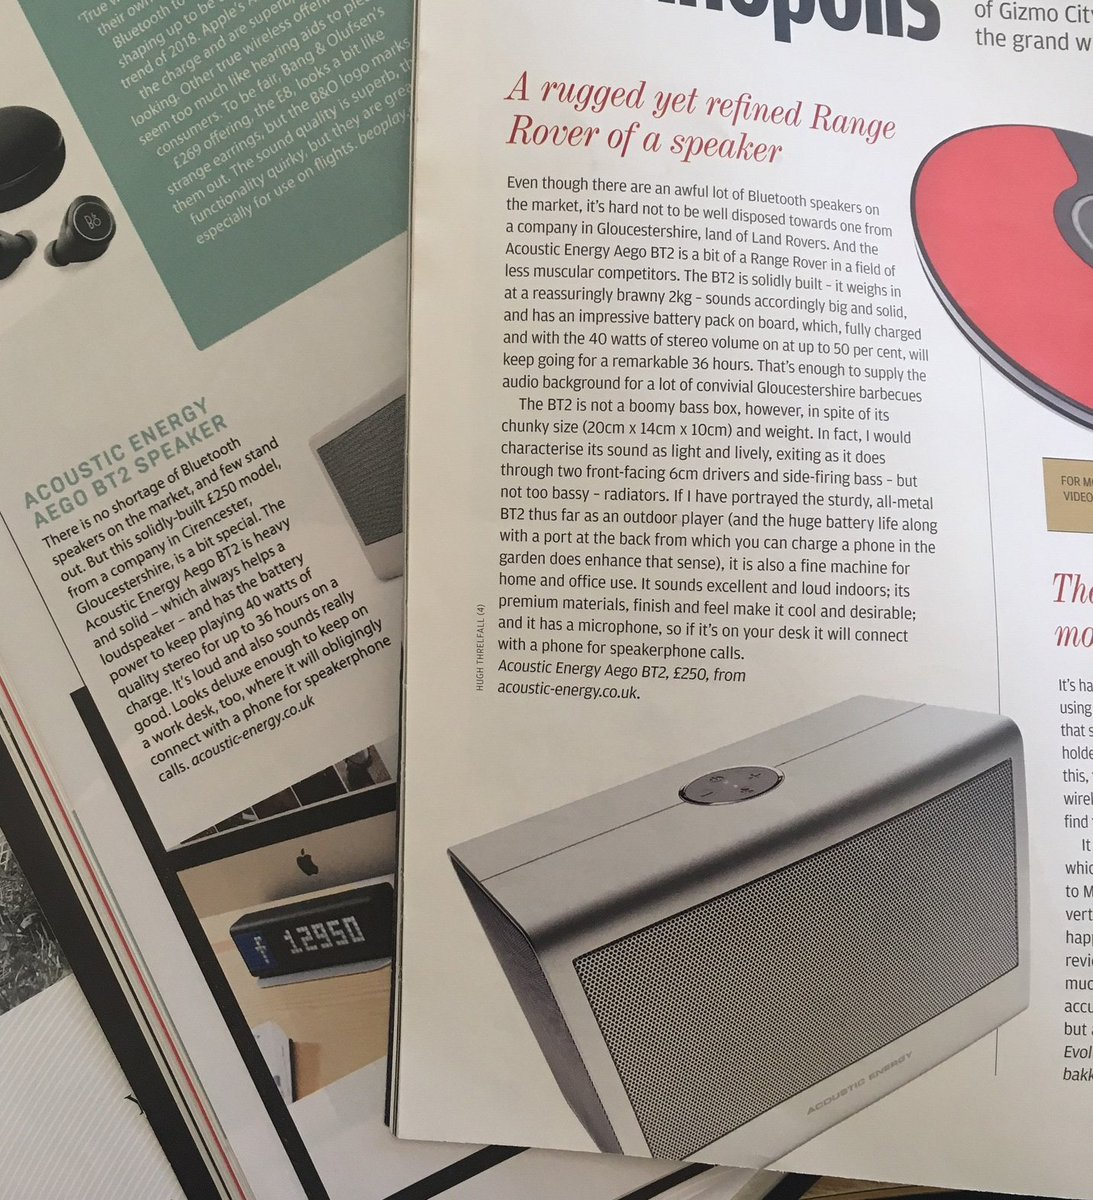 Acoustic Energy On Twitter Excellent Coverage For The Aego Bt2 In 3 British Airways Business Life Magazine And Financial Times Supplement Where It Was